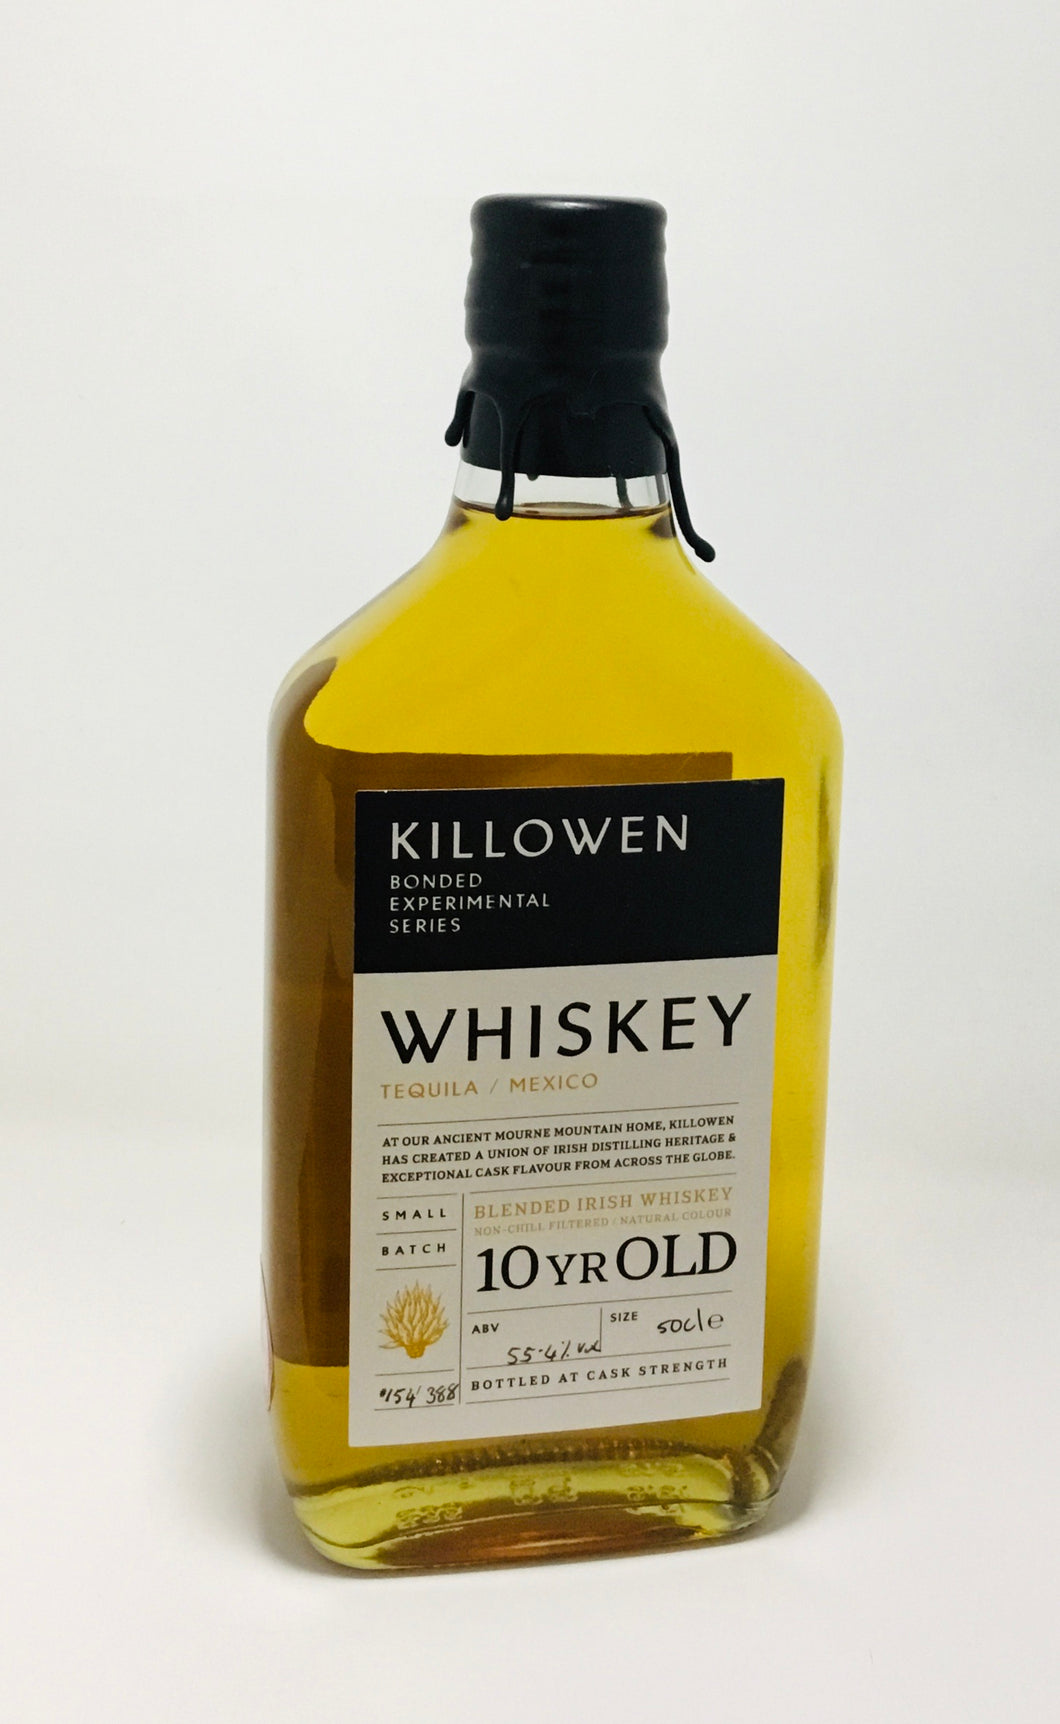 Killowen Mexican Tequila cask finish